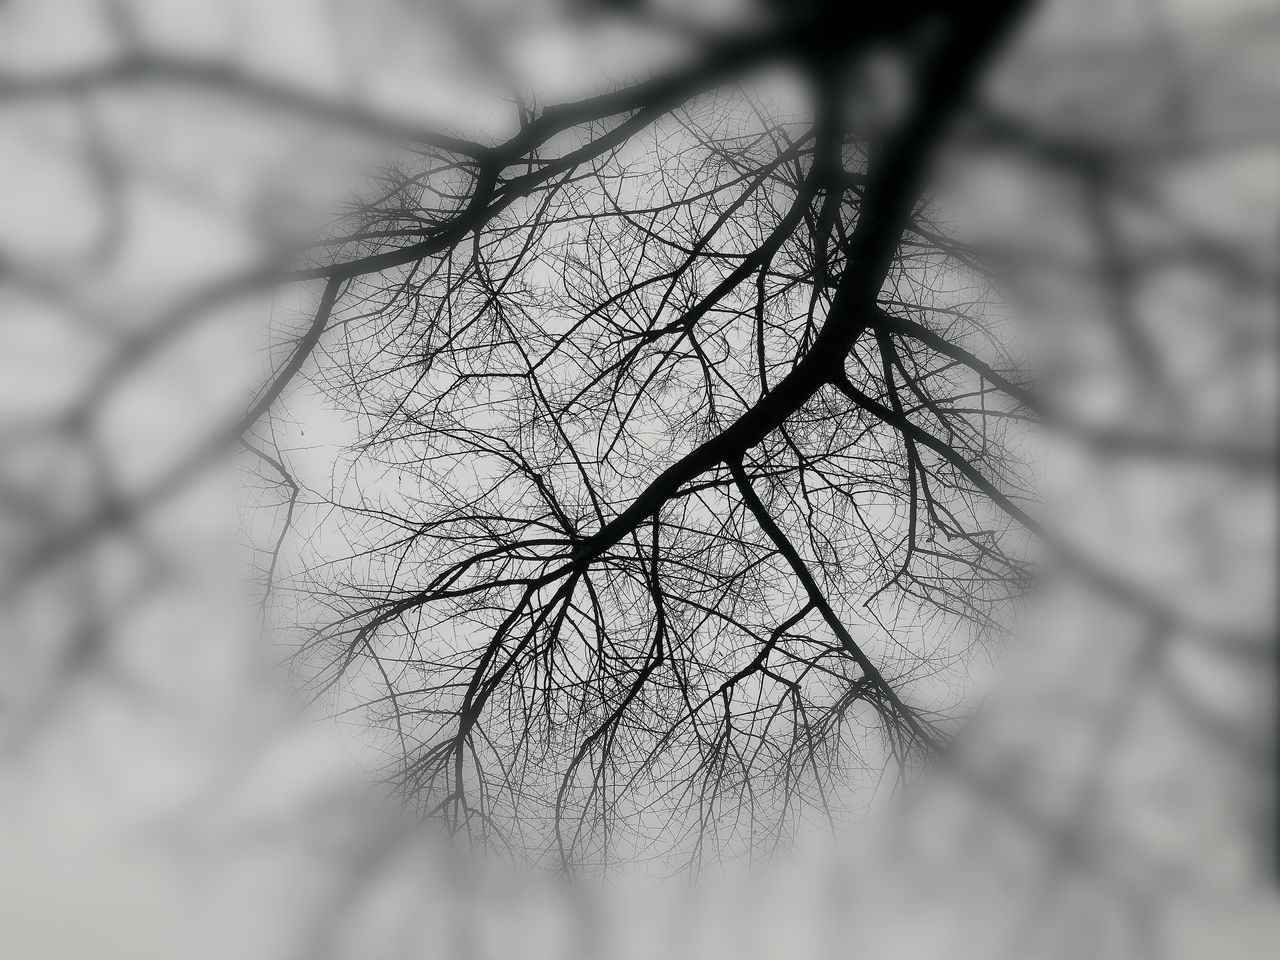 bare tree, selective focus, human body part, close-up, outdoors, human skin, branch, day, nature, beauty in nature, one person, tree, human hand